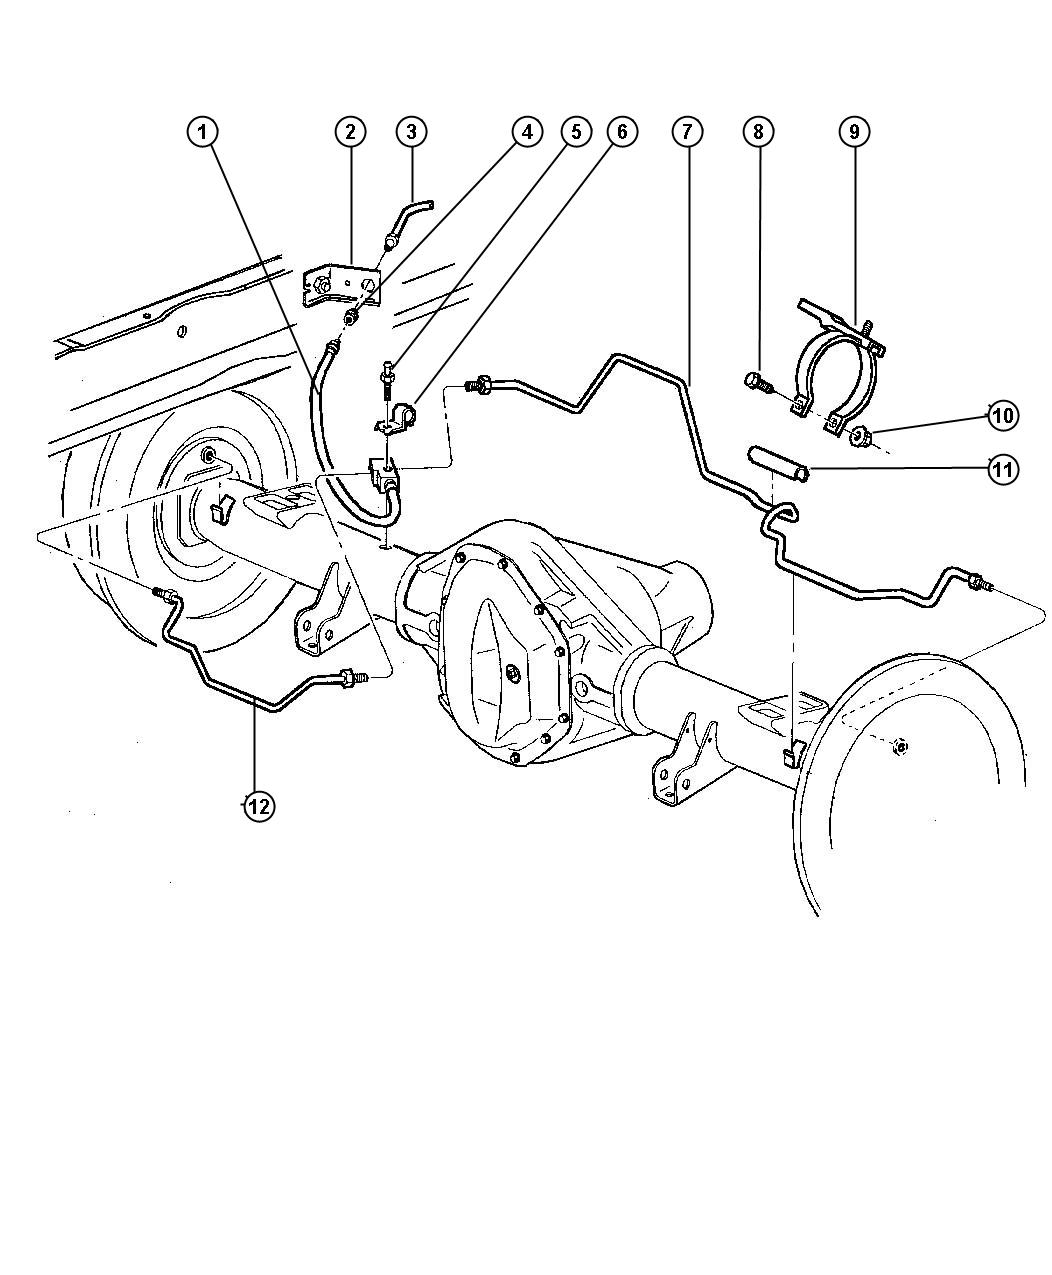 1998 dodge ram 2500 abs wiring diagram courtroom set up 2003 1500 rear axle car autos gallery